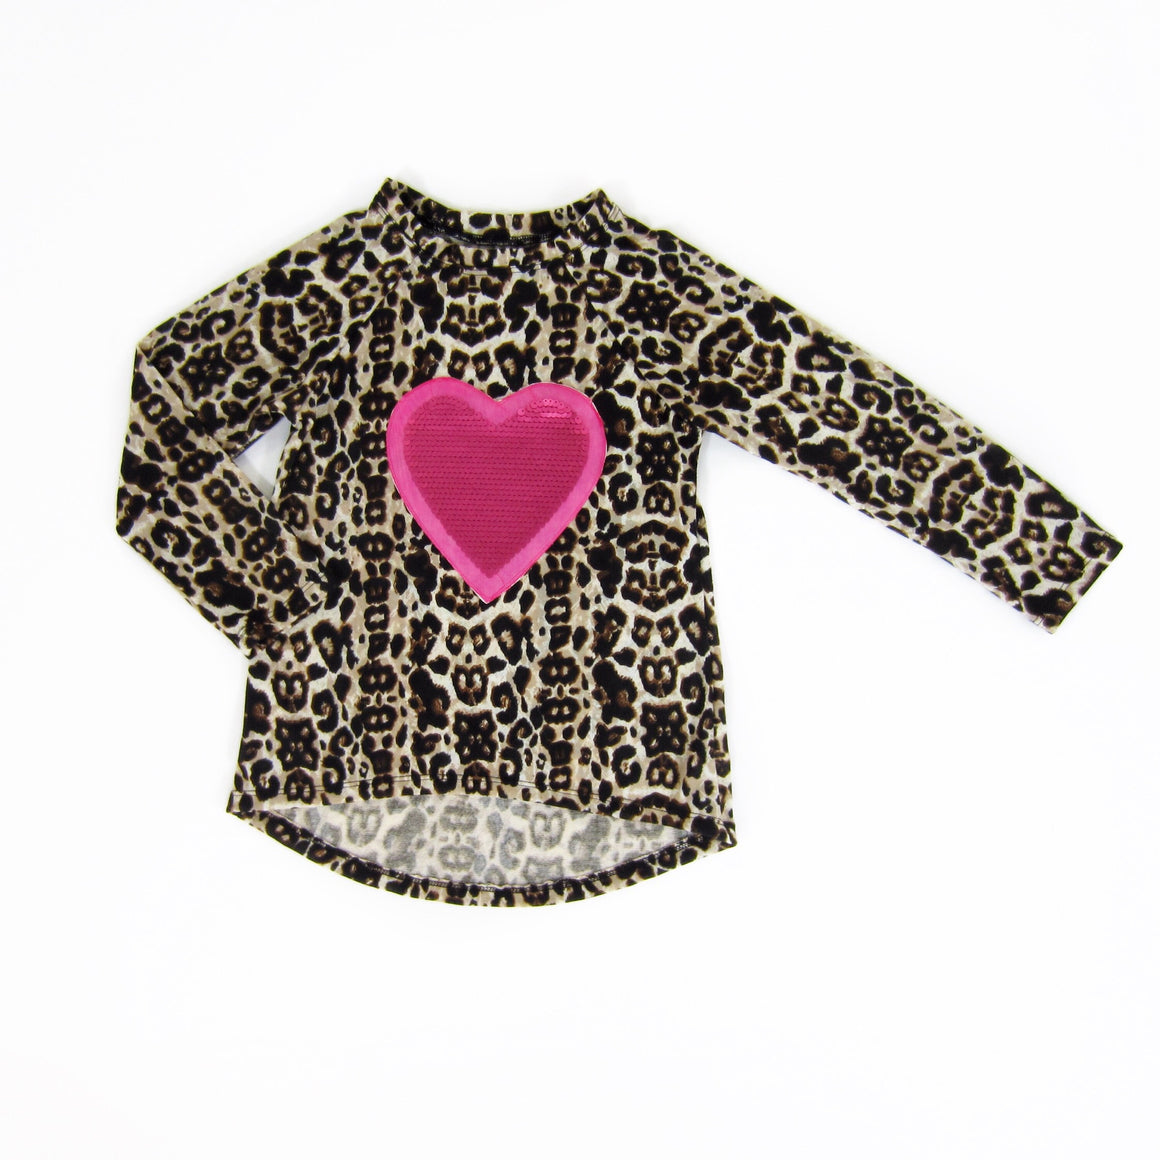 Girls Pink Heart Leopard Top - Liberty Lark